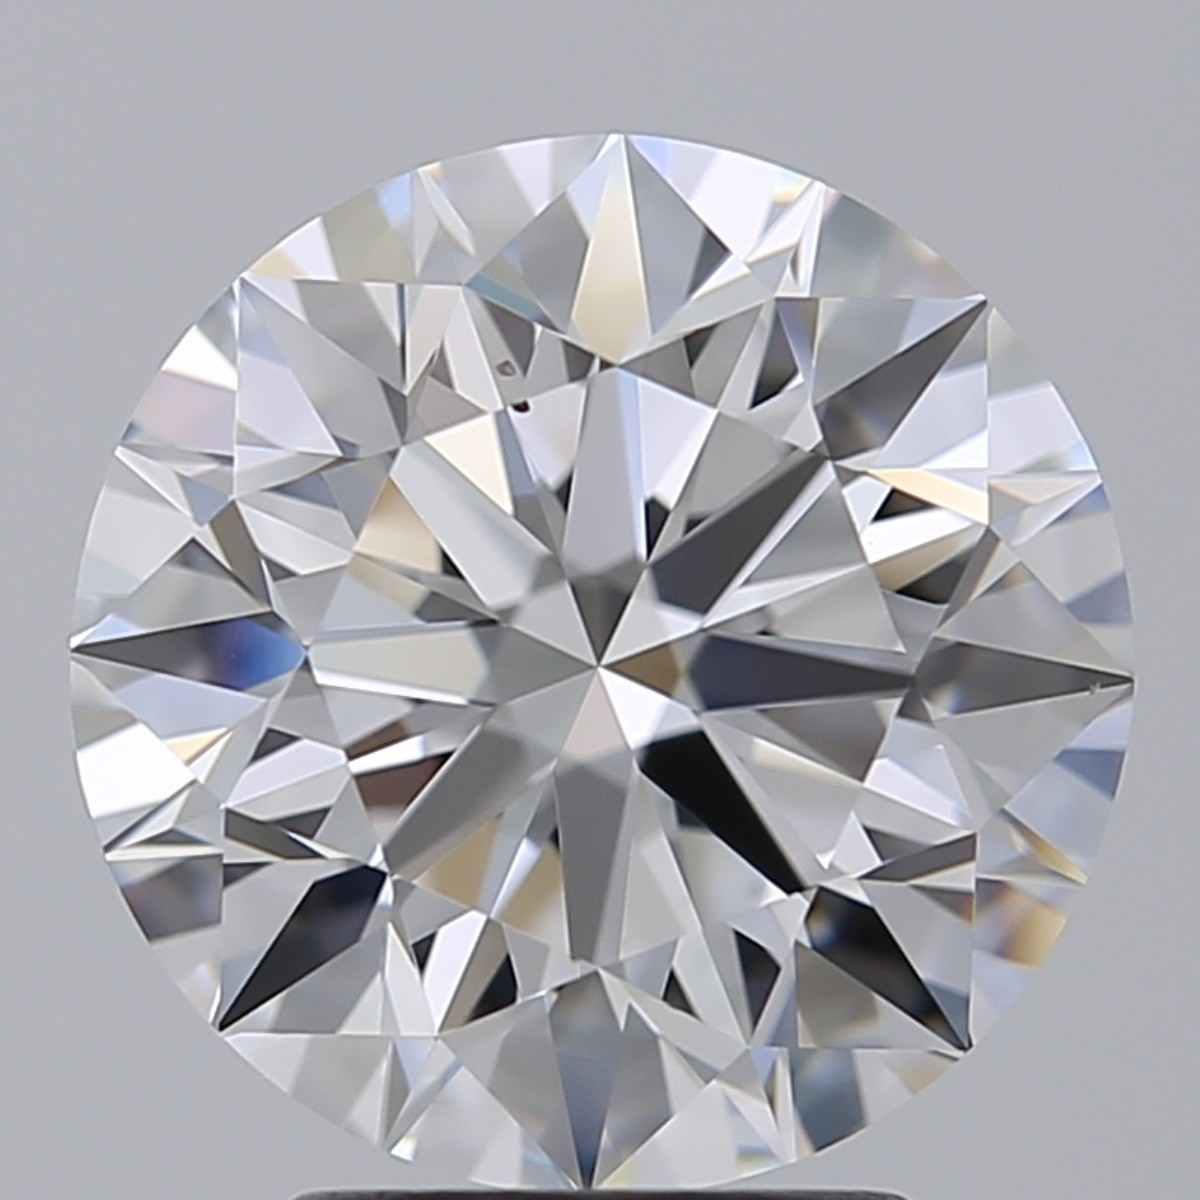 3.21 Carat Round Brilliant Diamond (D/VS2)